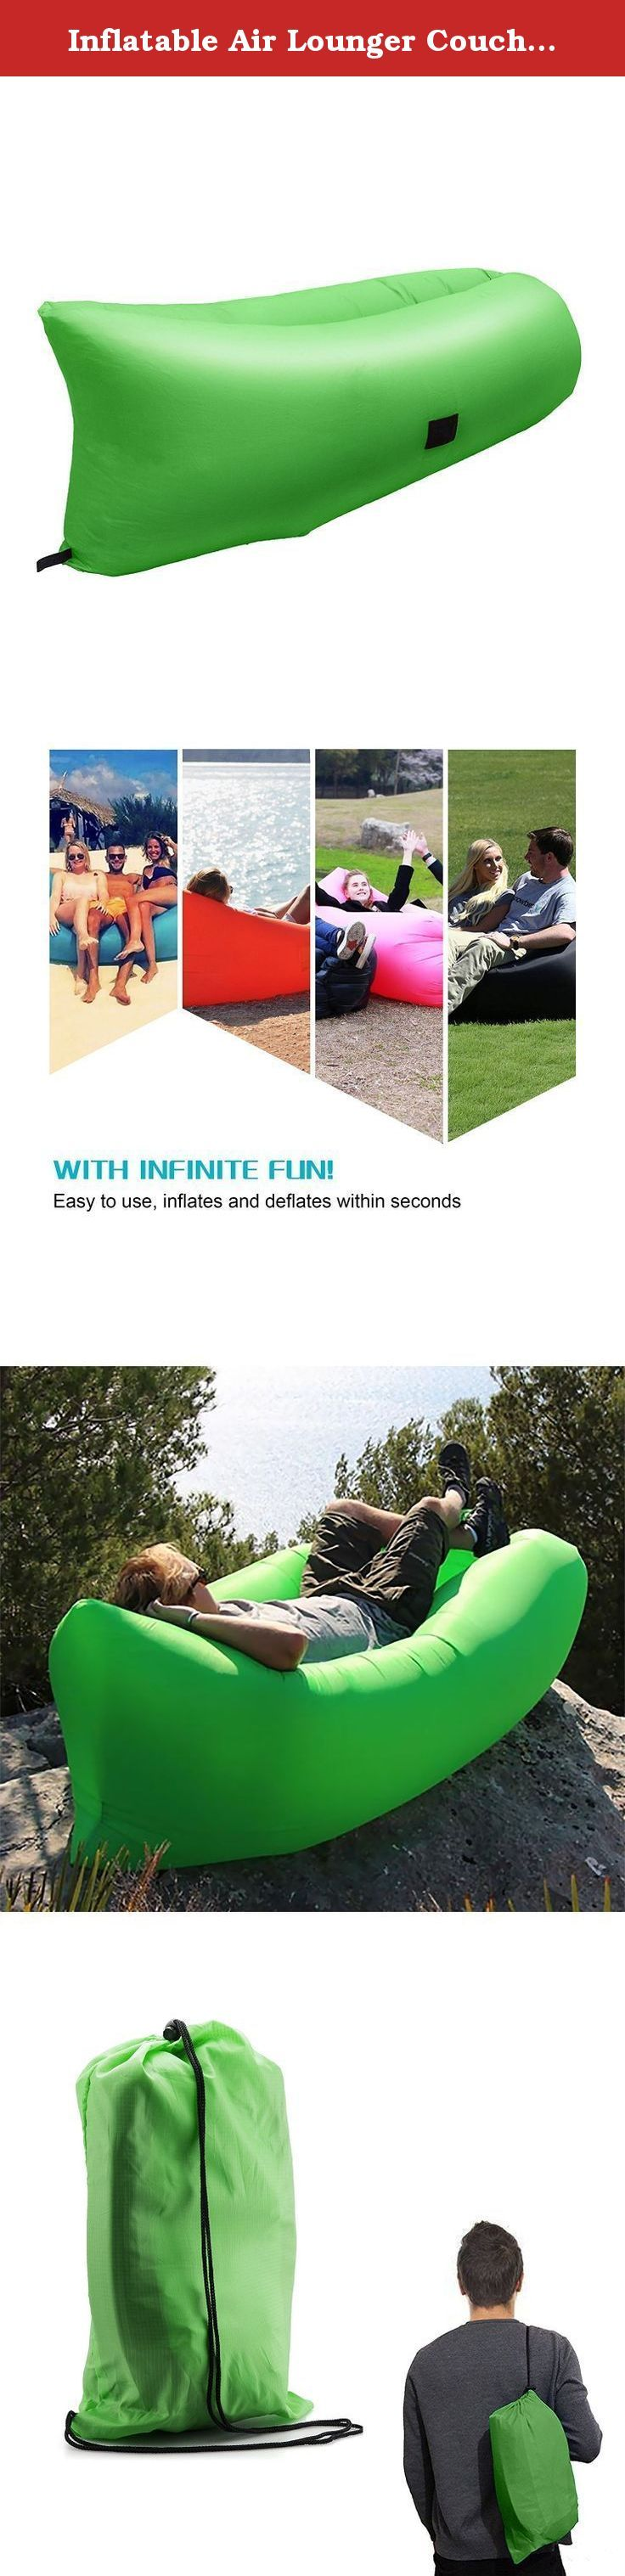 Inflatable Air Lounger Couch ,Portable Air Lazy Sofa Bag Waterproof Nylon Fabric hammock for Family Outdoor Party Camping Picnic Sport Outing Beach Park Without Air Pump. ❤ Multi-function sides pockets: There are 2 pockets on one side. You can put your smartphone or bottles on the left pocket. On the right pocket, you can put i pad or your favorite books or magazines on this hangout lounger!. ❤ Multi-layer protection :Compare to other single -layer inflatable sofa, our air hammock was…